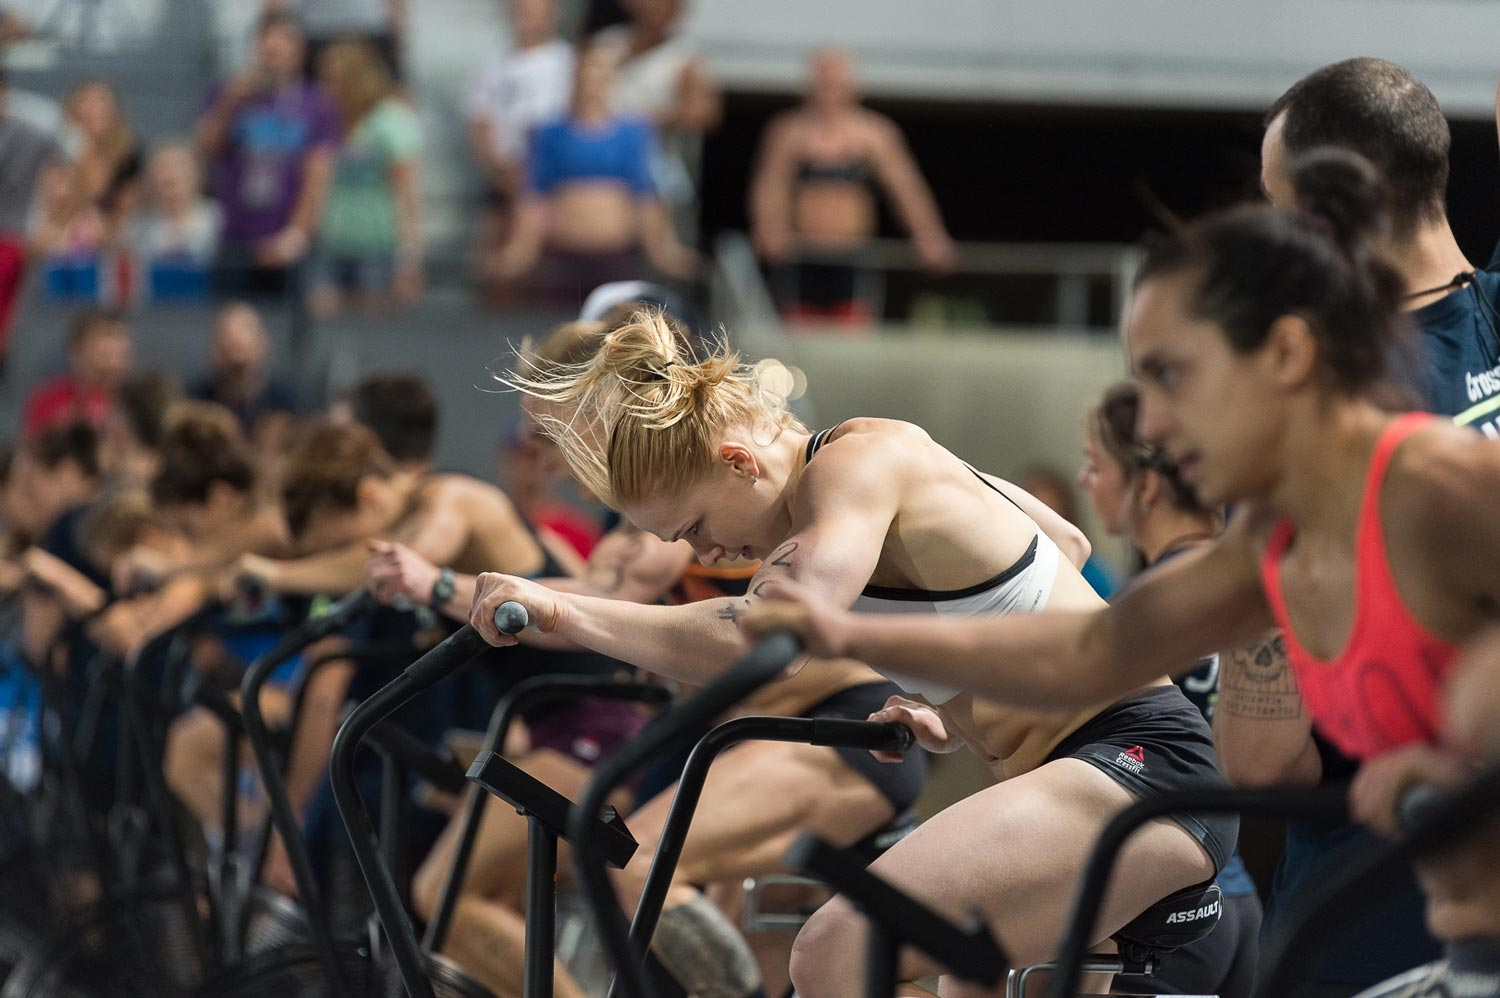 annie thorisdottir crossfit regionals bike sprint high intensity